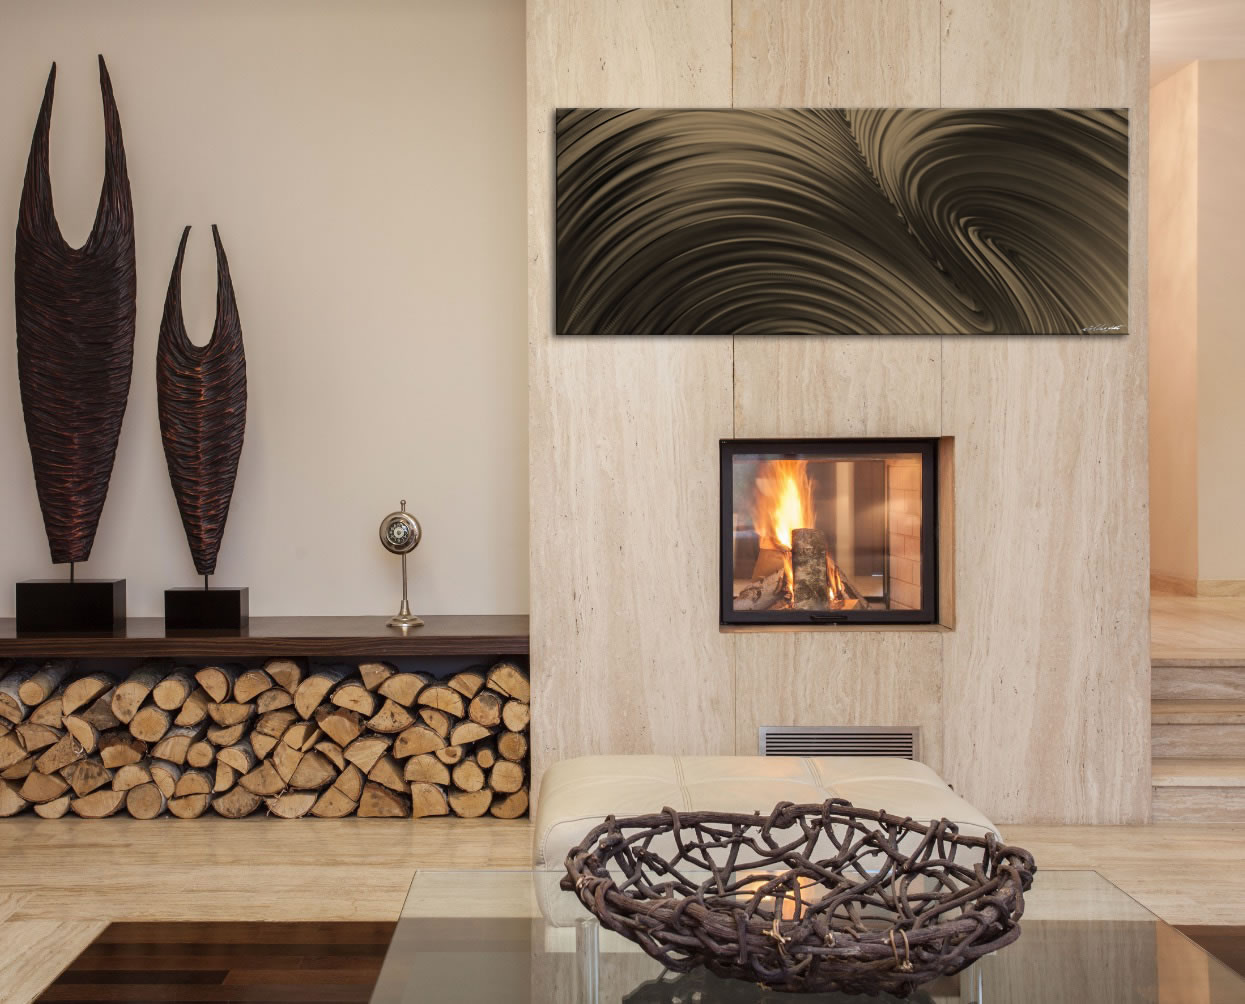 Fusion Bronze - Contemporary Metal Wall Art - Lifestyle Image